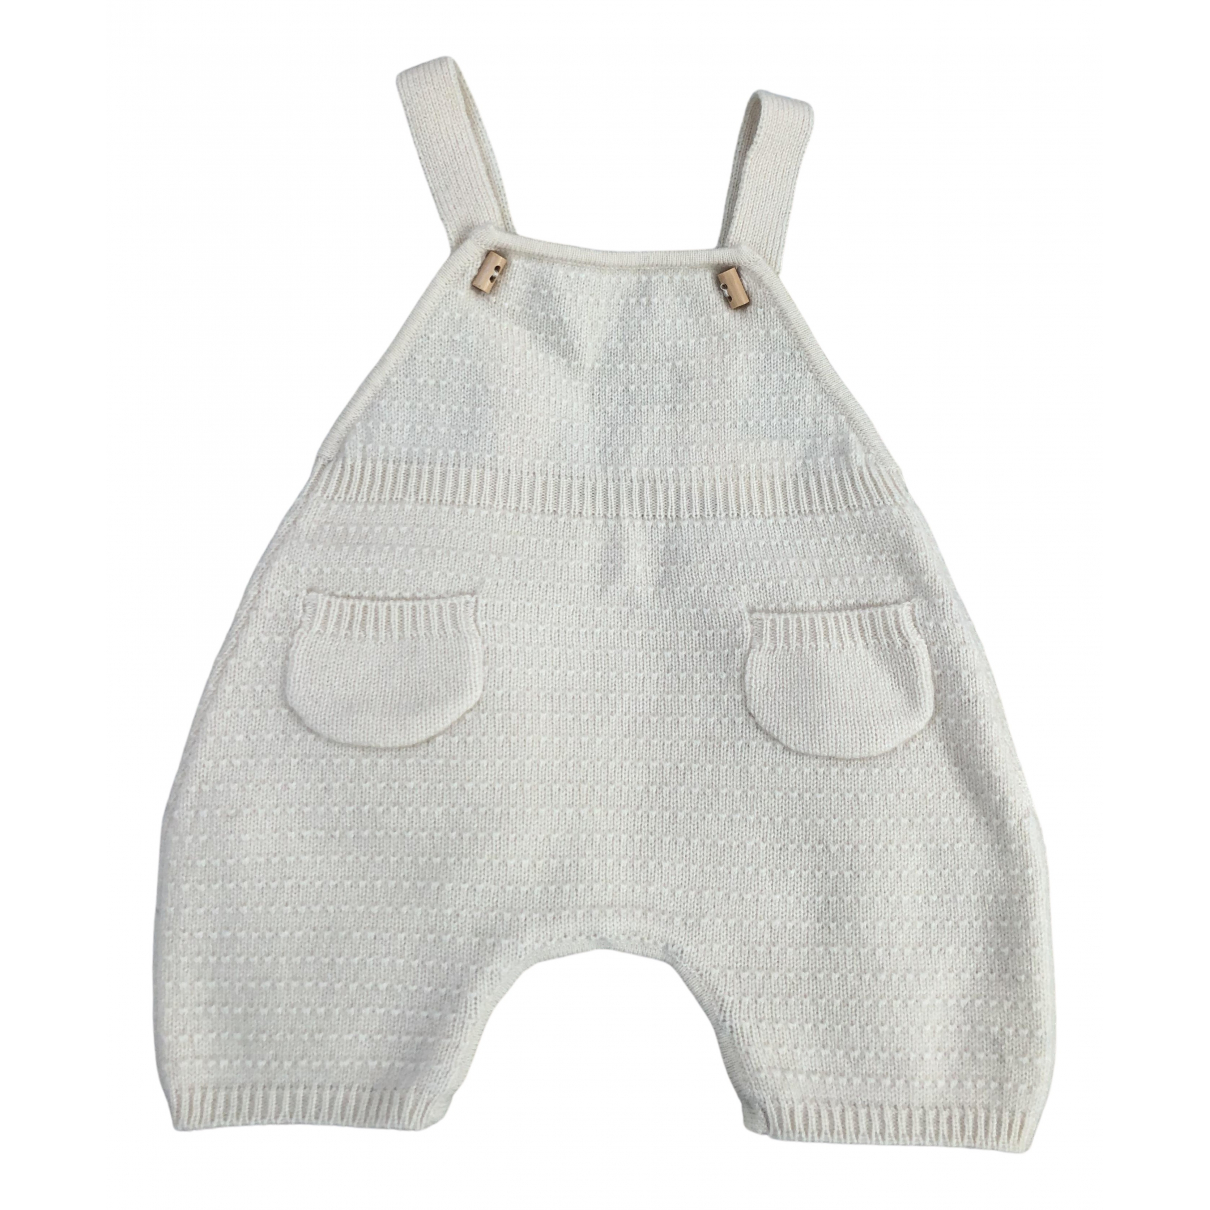 Les Lutins N Ecru Cashmere Outfits for Kids 6 months - up to 67cm FR